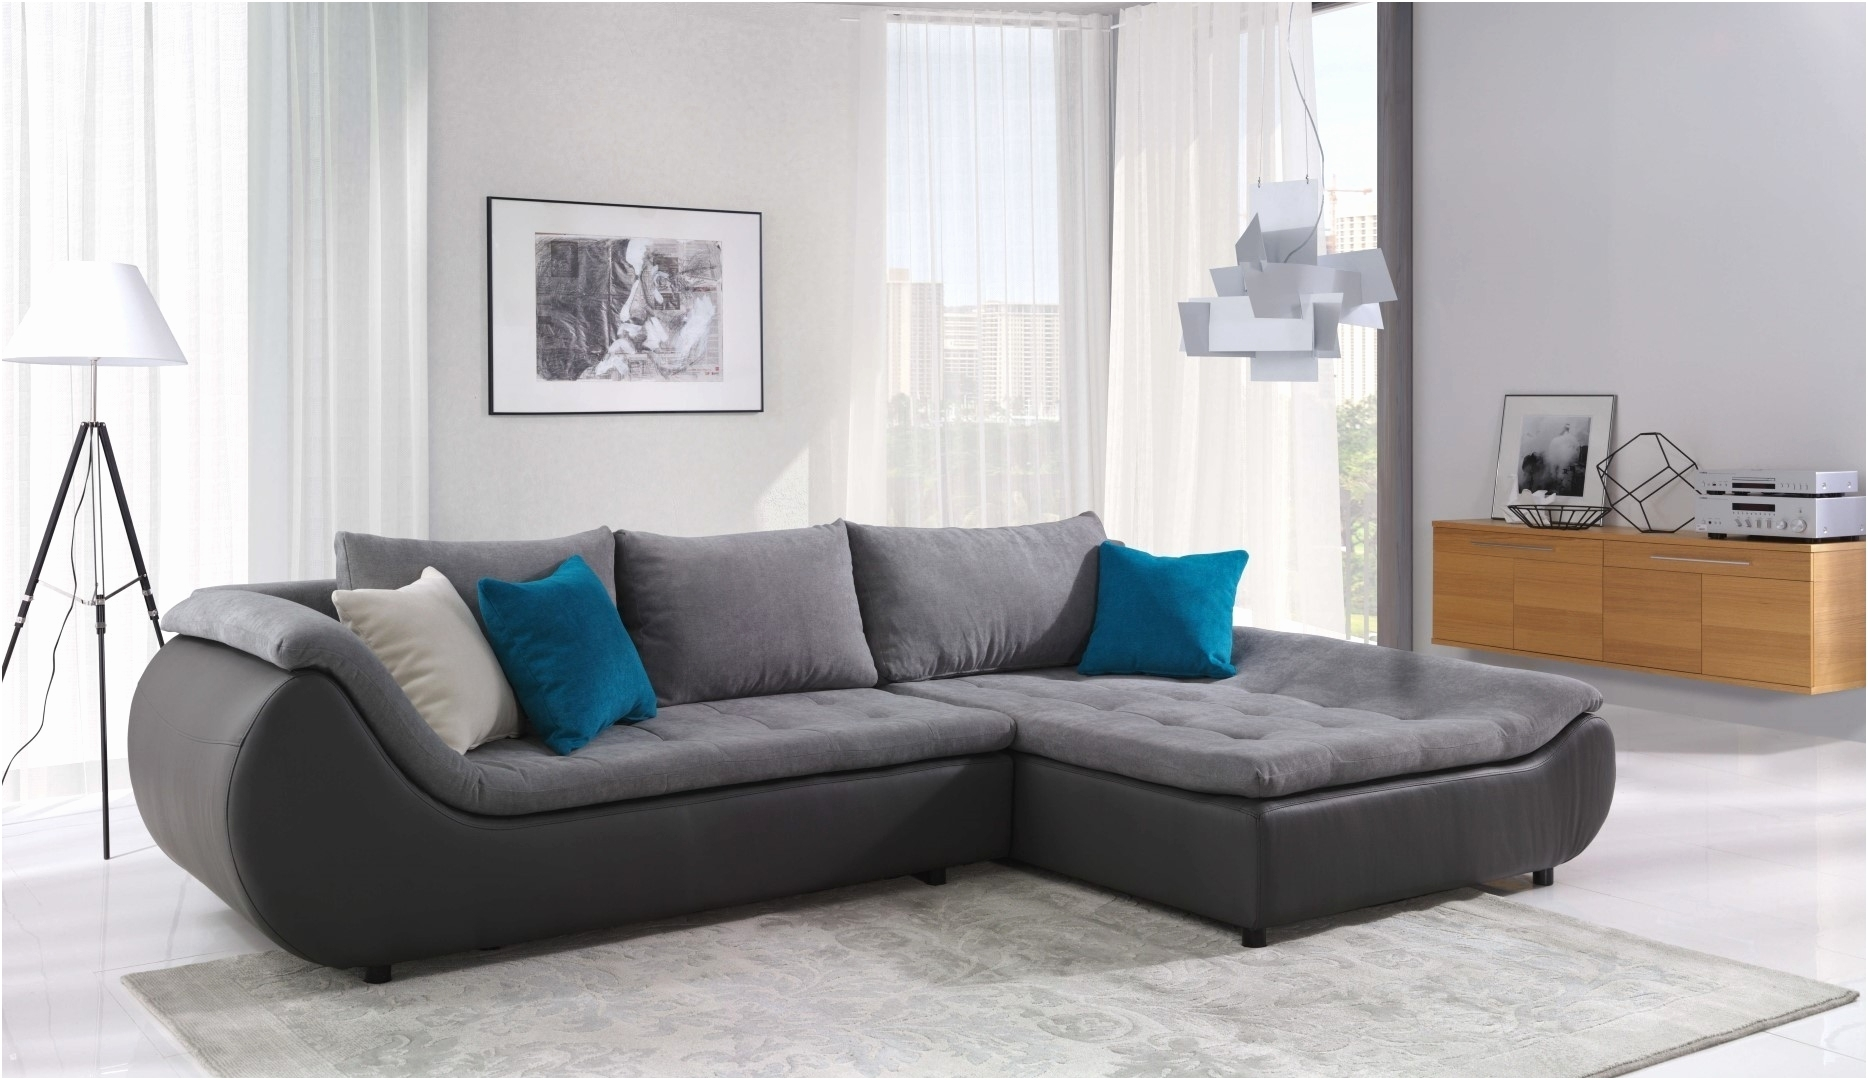 Sectional Sofas Under 500 Dollars – Intuisiblog in Sectional Sofas Under 500 (Image 10 of 15)